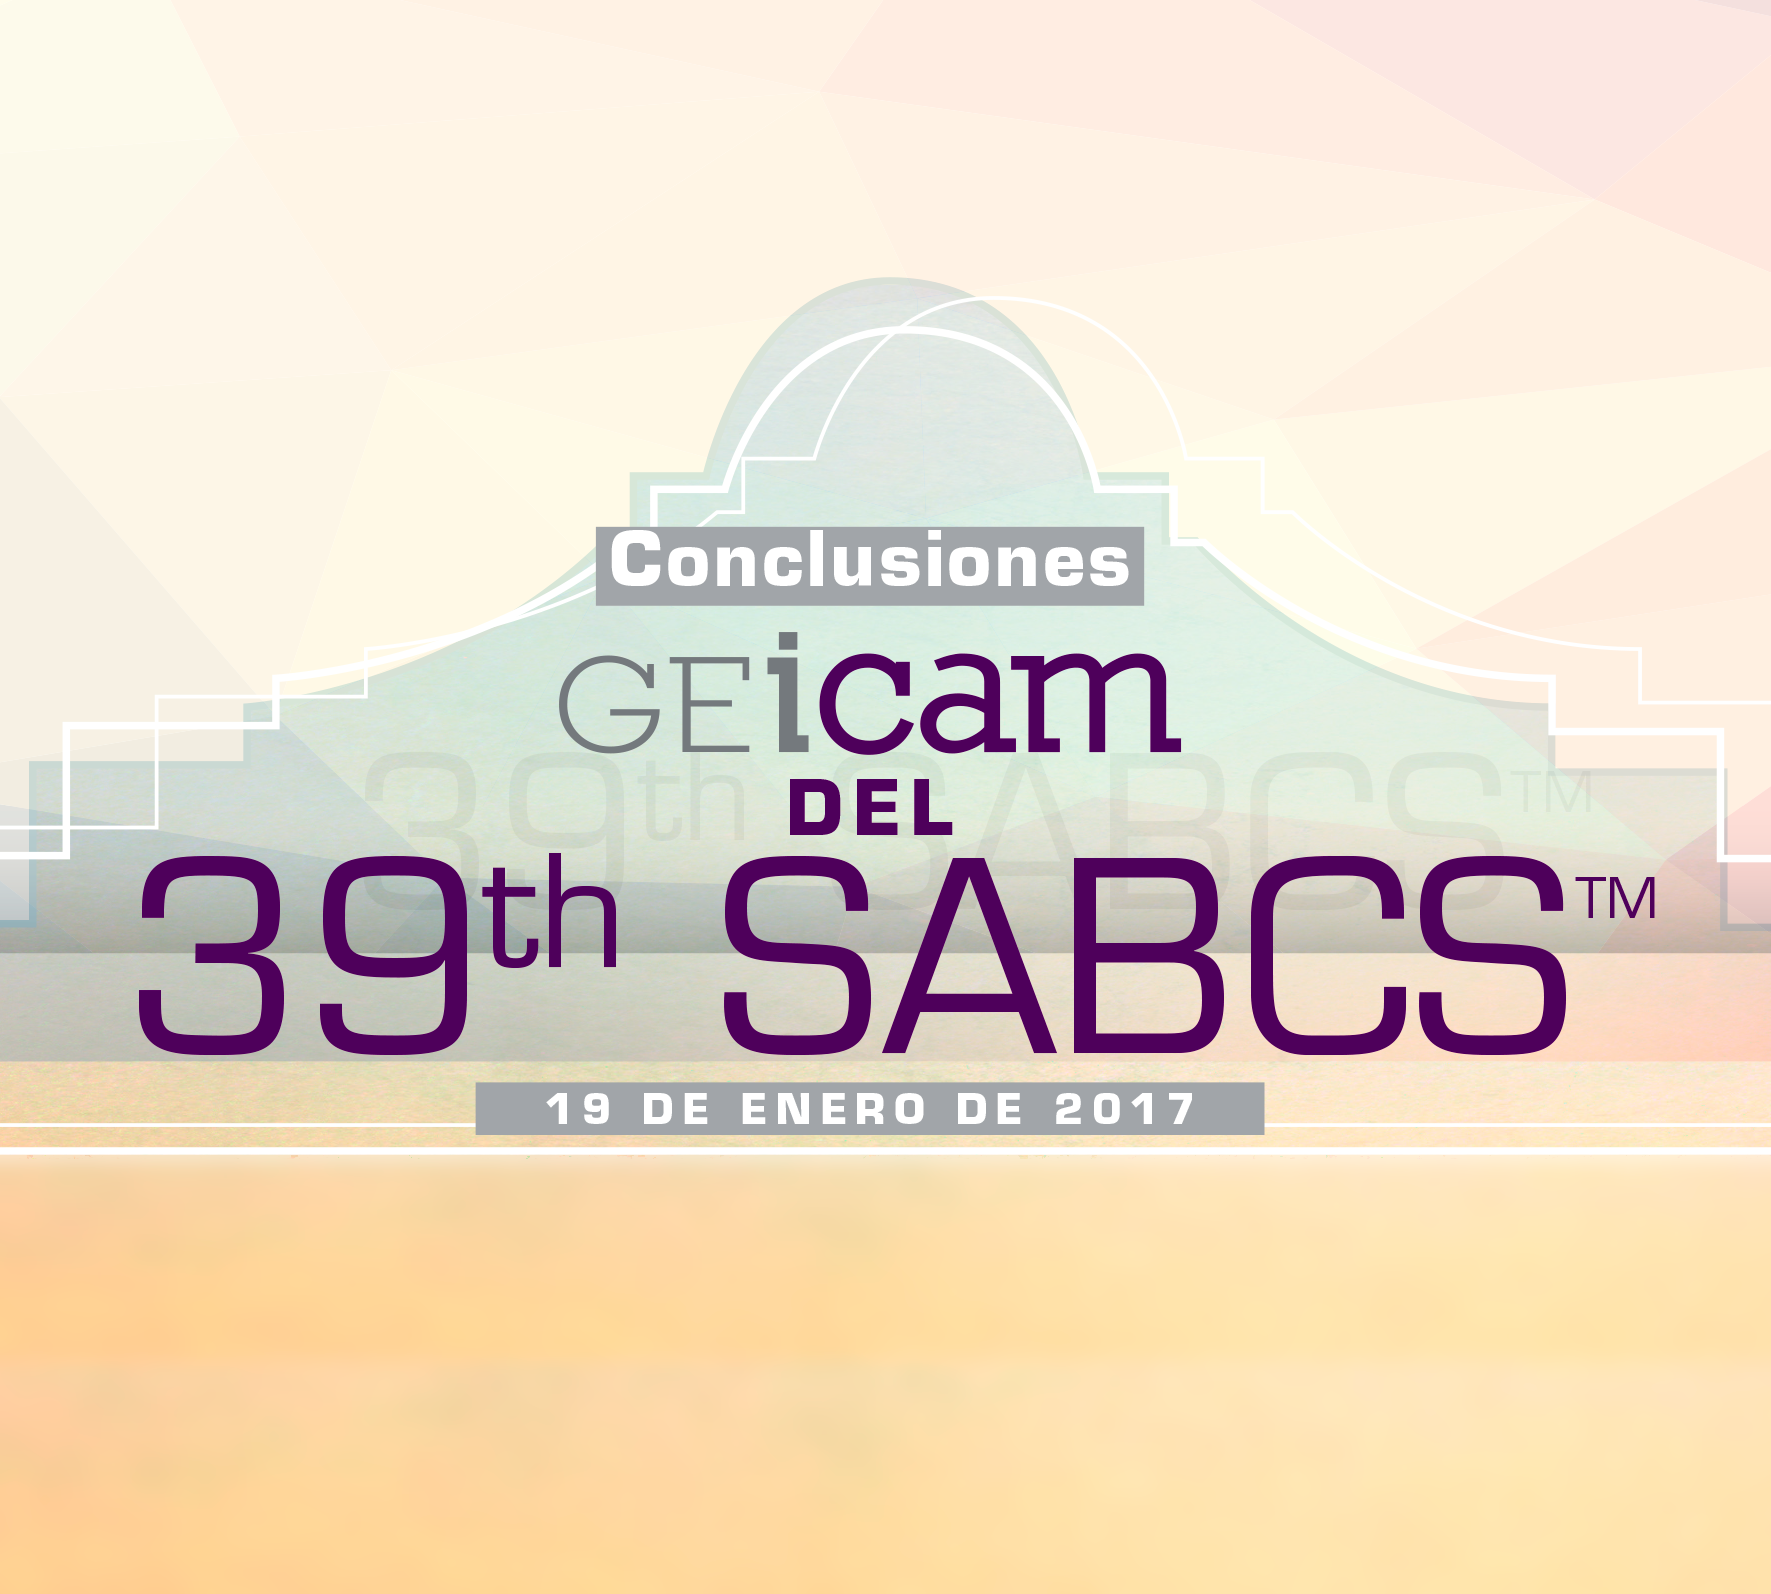 gei_even39thsabcs_destacada_400x400pix